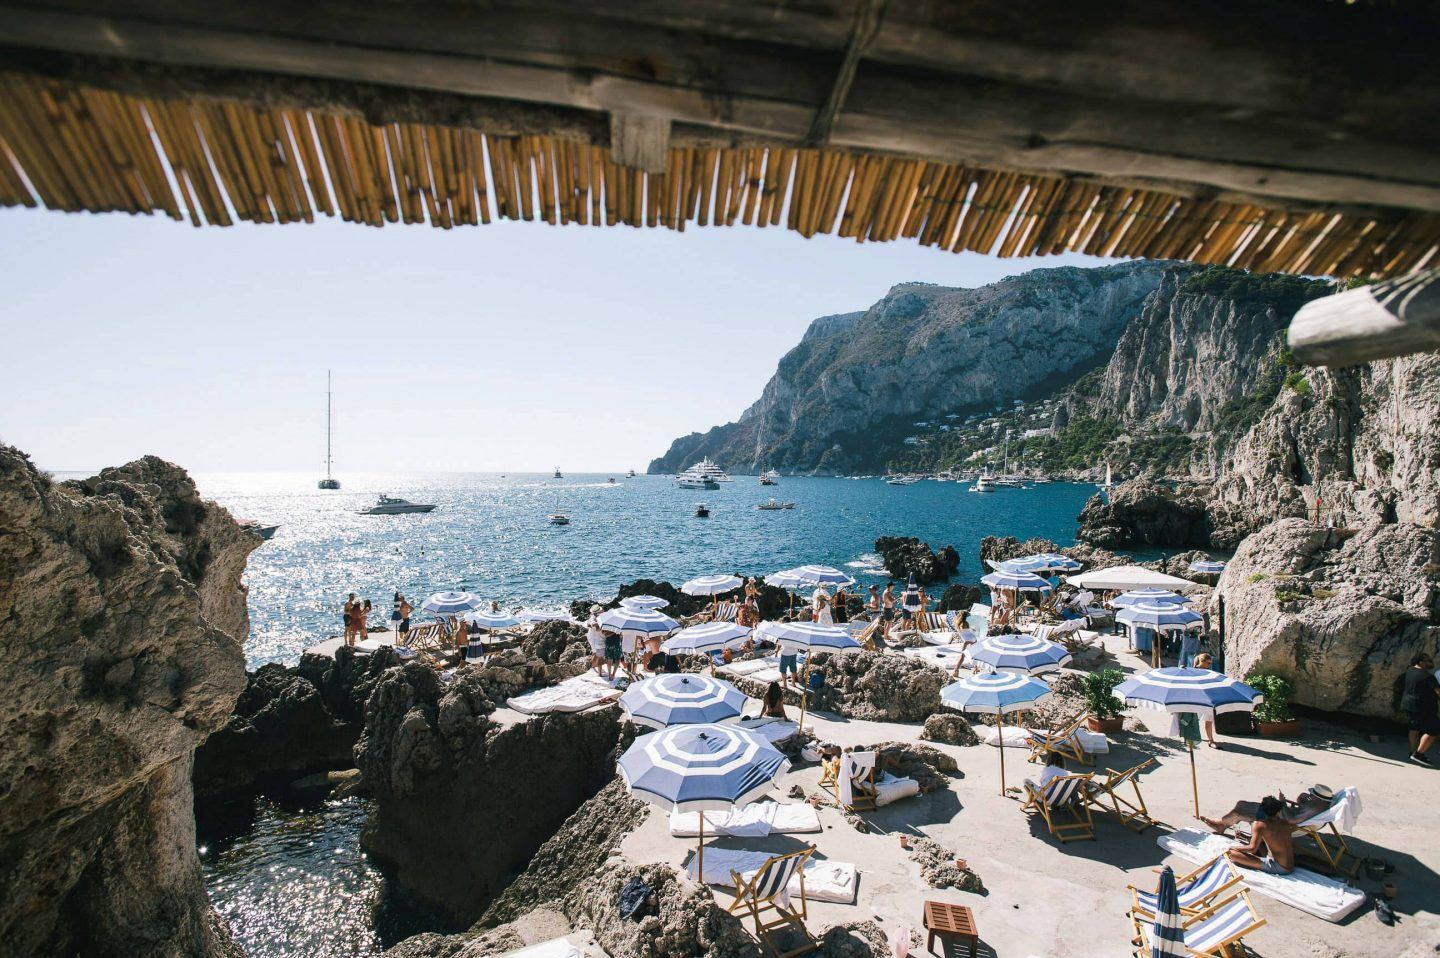 Guests under blue umbrellas at La Fontelina in Capri at this Positano wedding weekend in Villa Tre Ville | Photo by Gianni di Natale